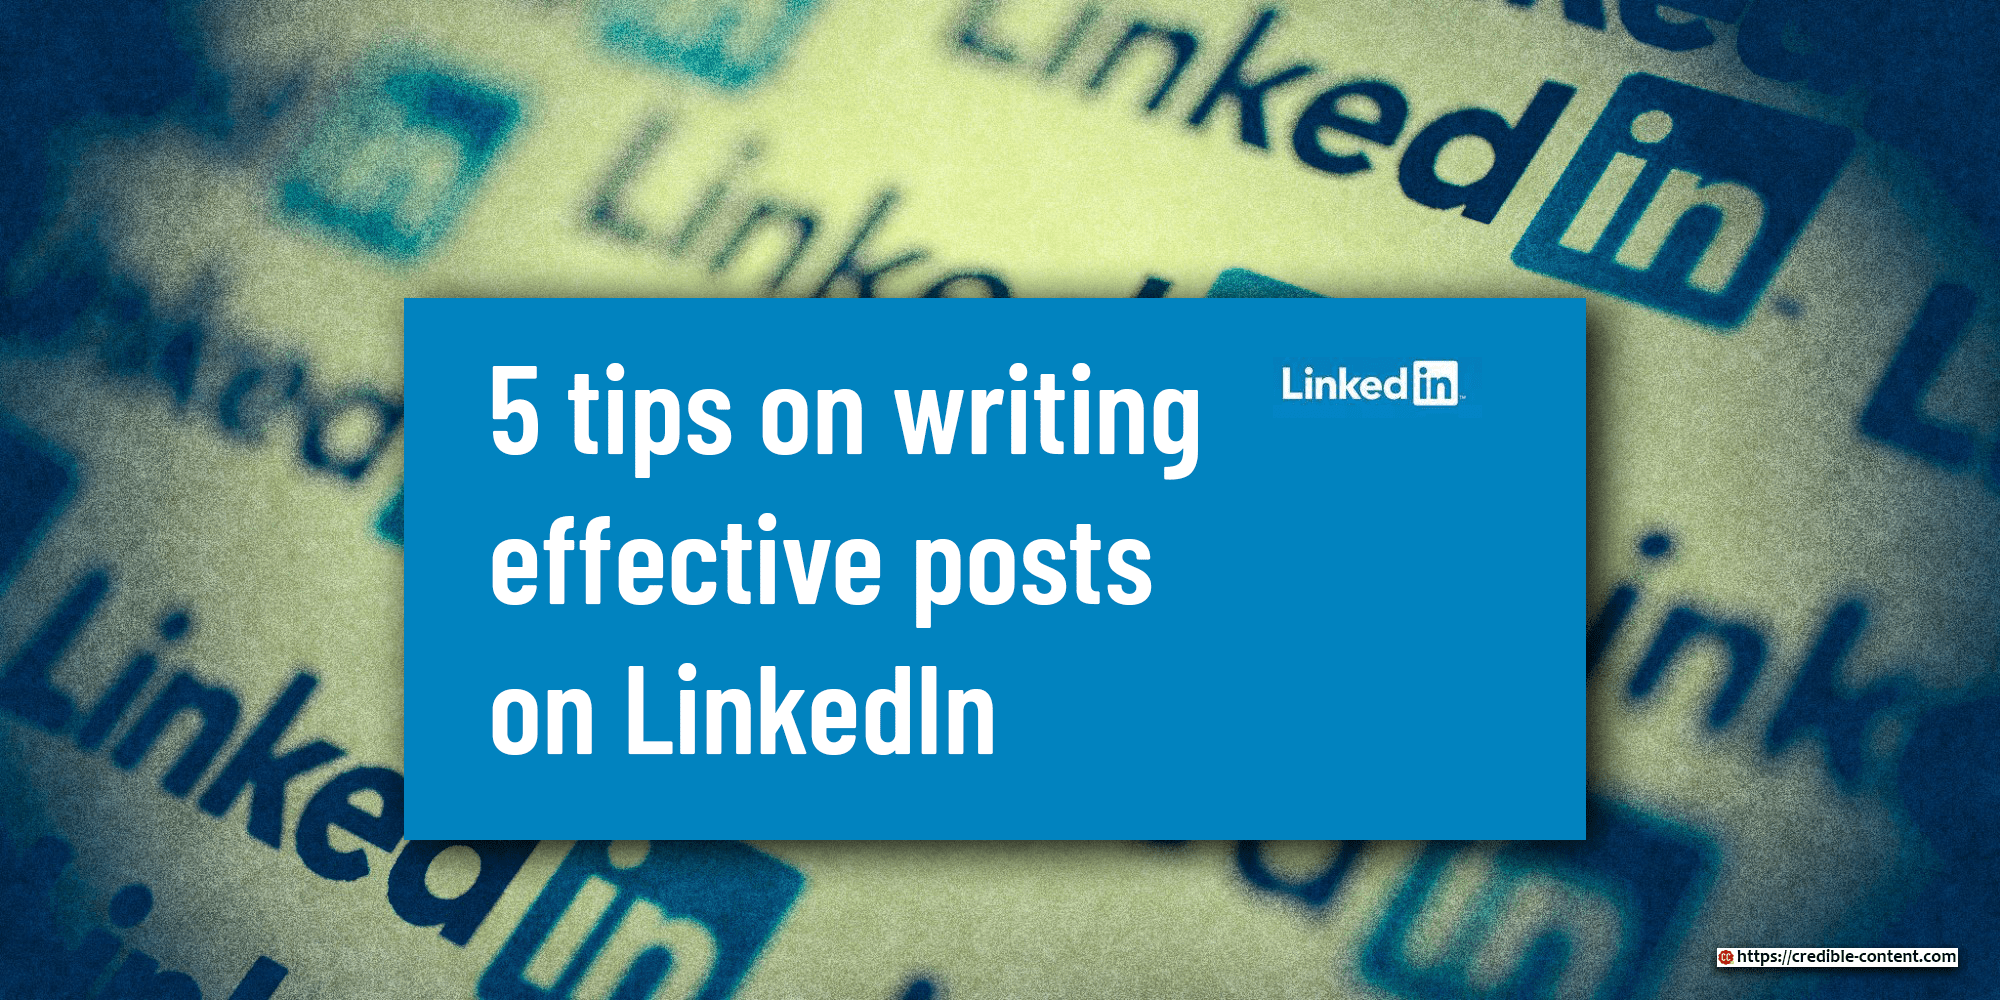 5 tips on writing effective posts for LinkedIn